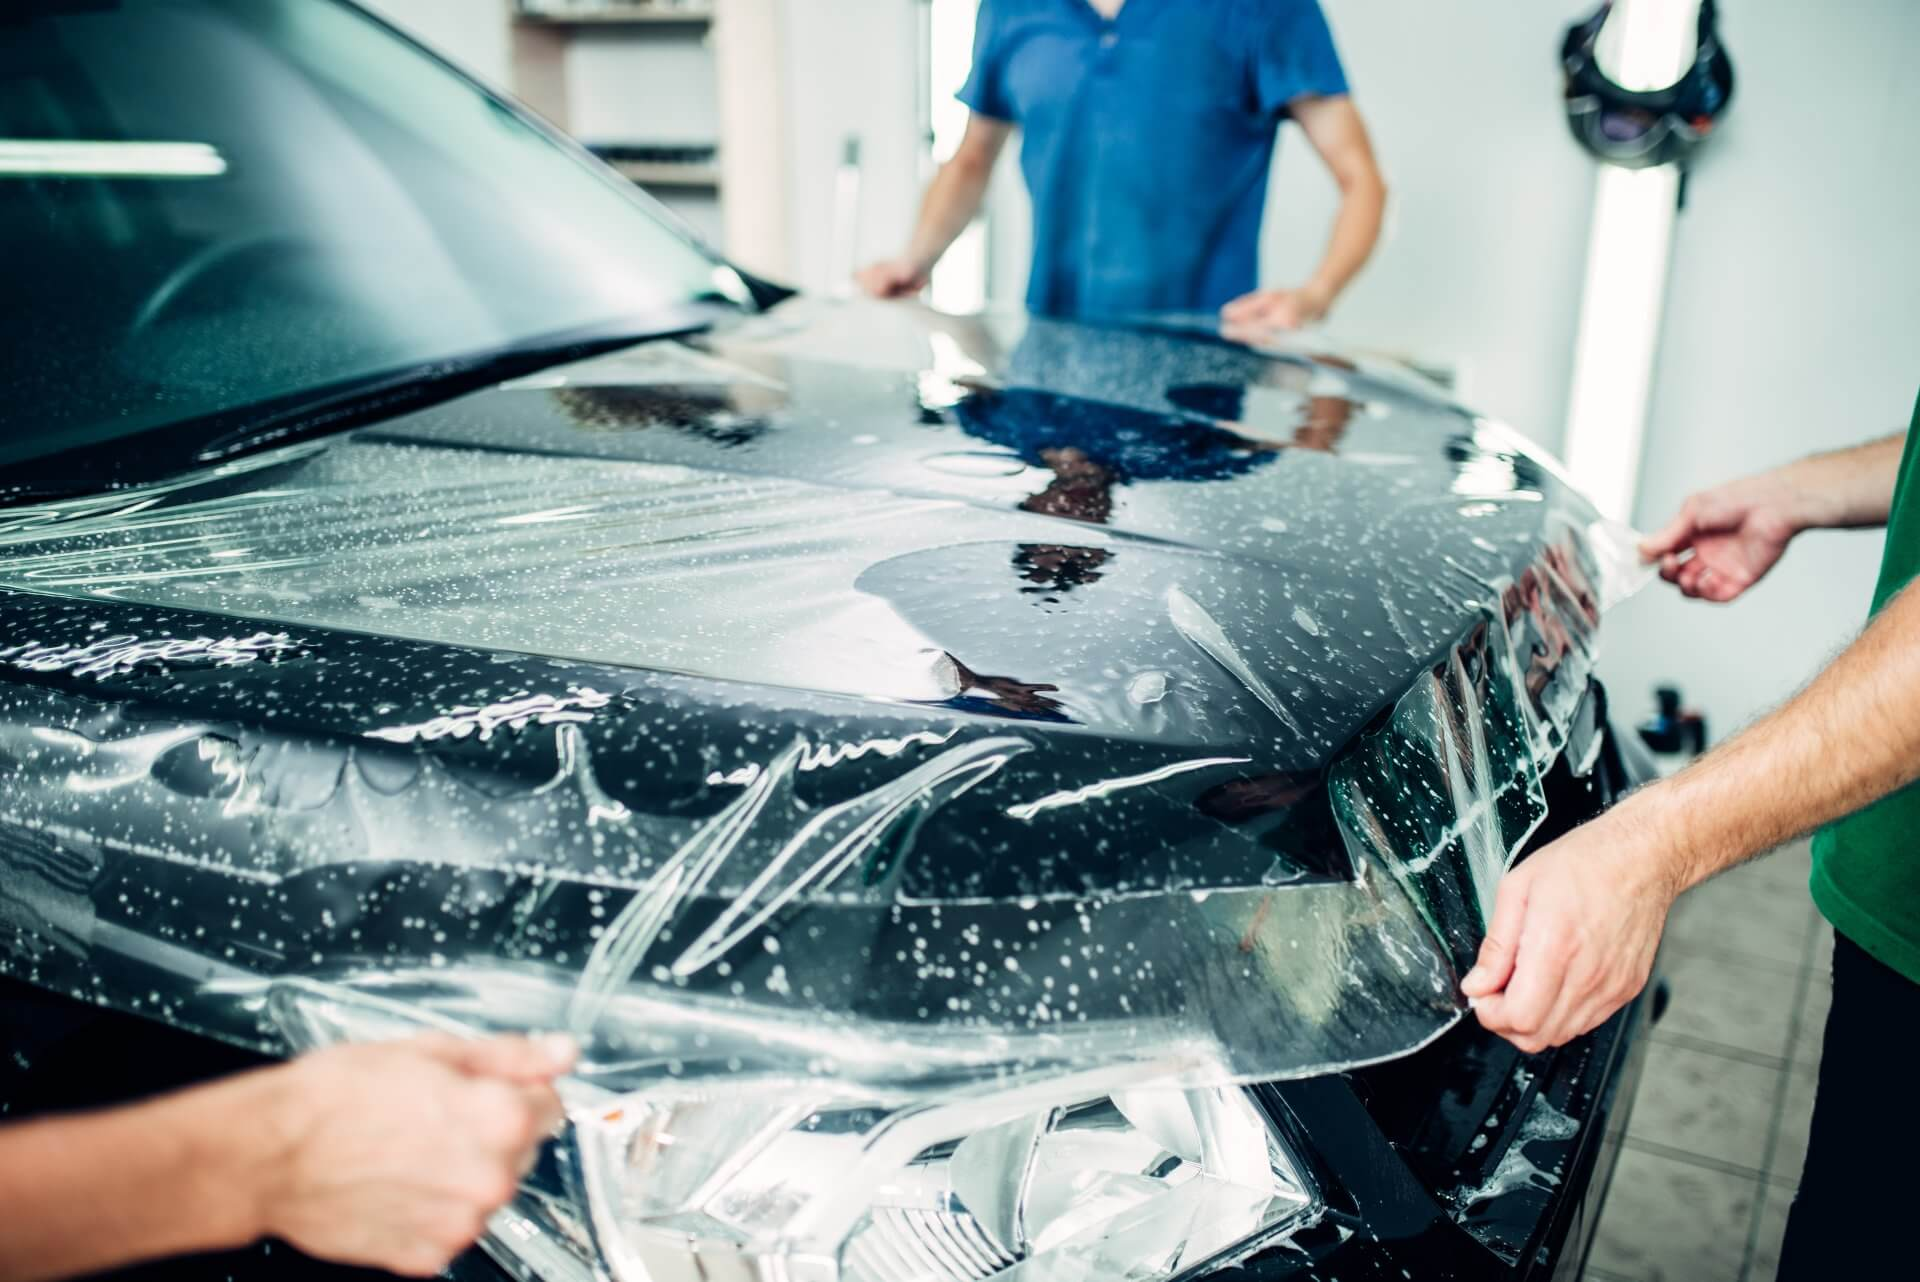 Paint Protection Measures for Your Car